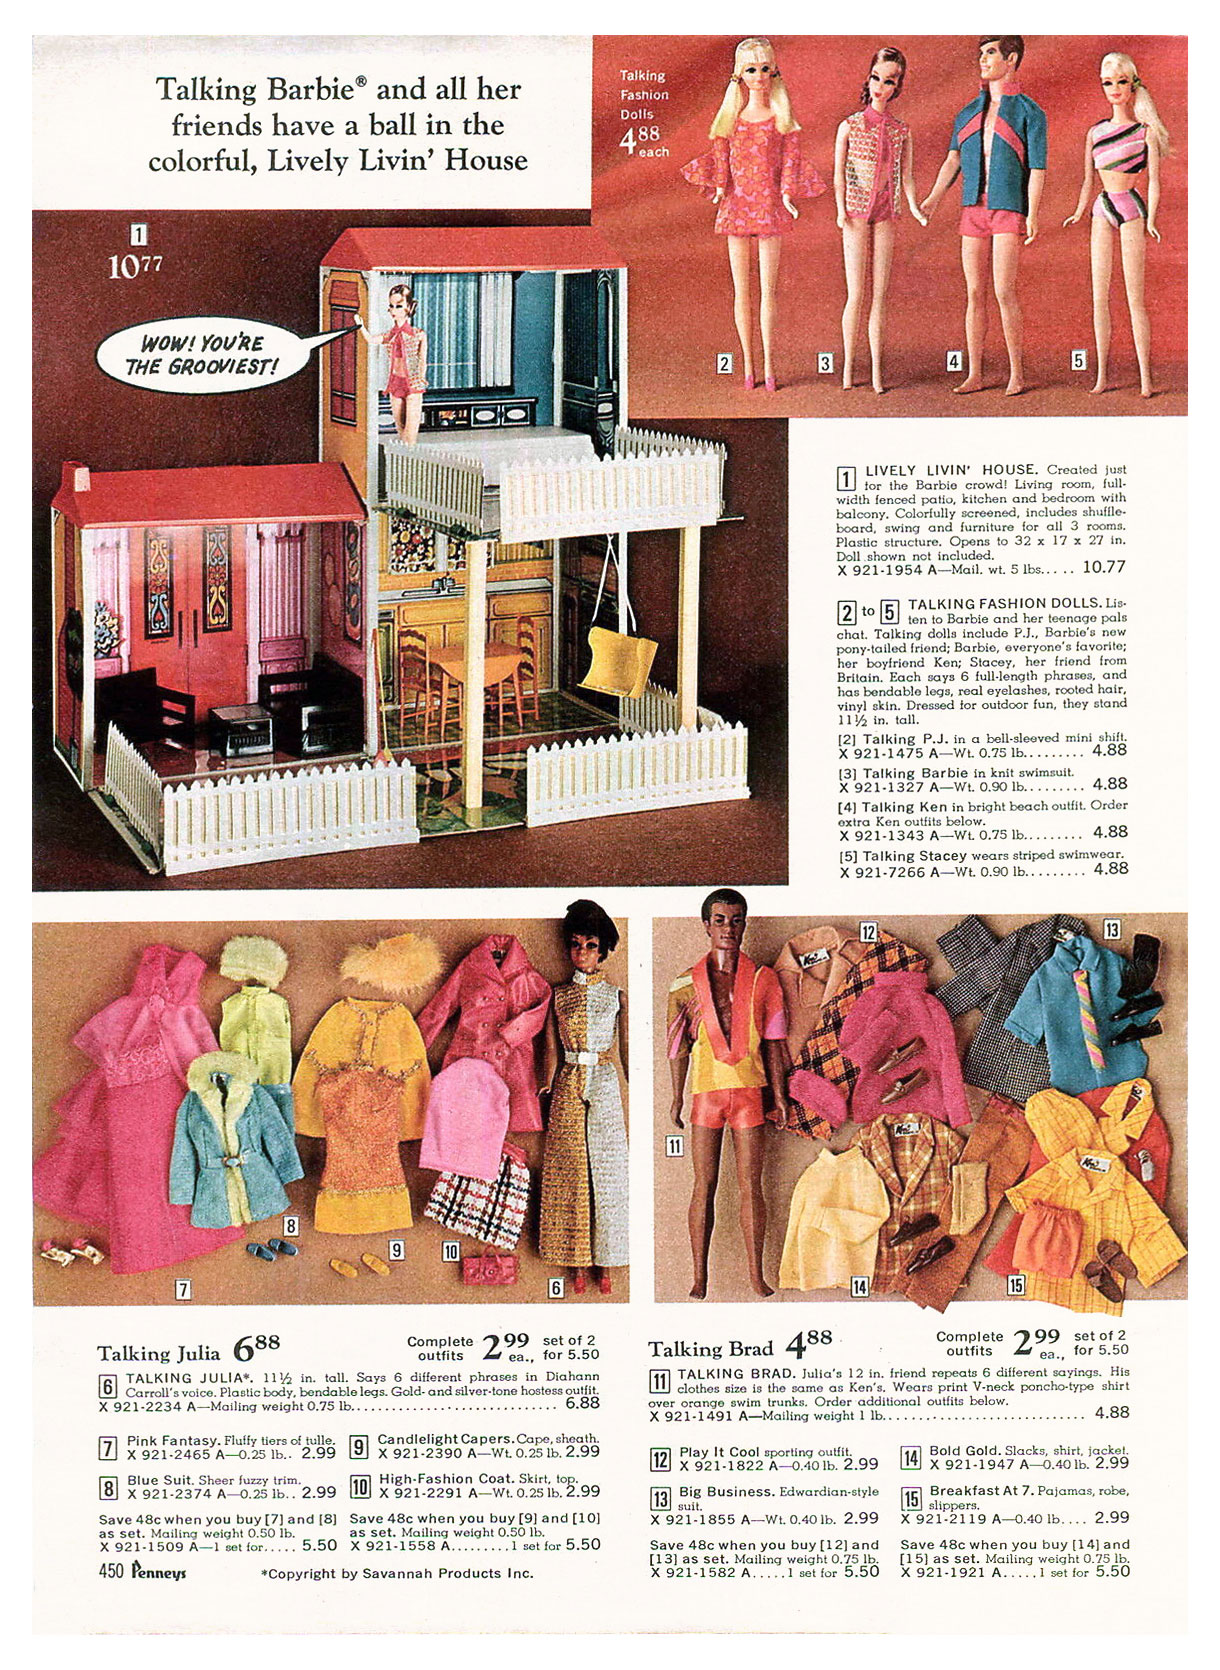 From 1970 JCPenney Christmas catalogue